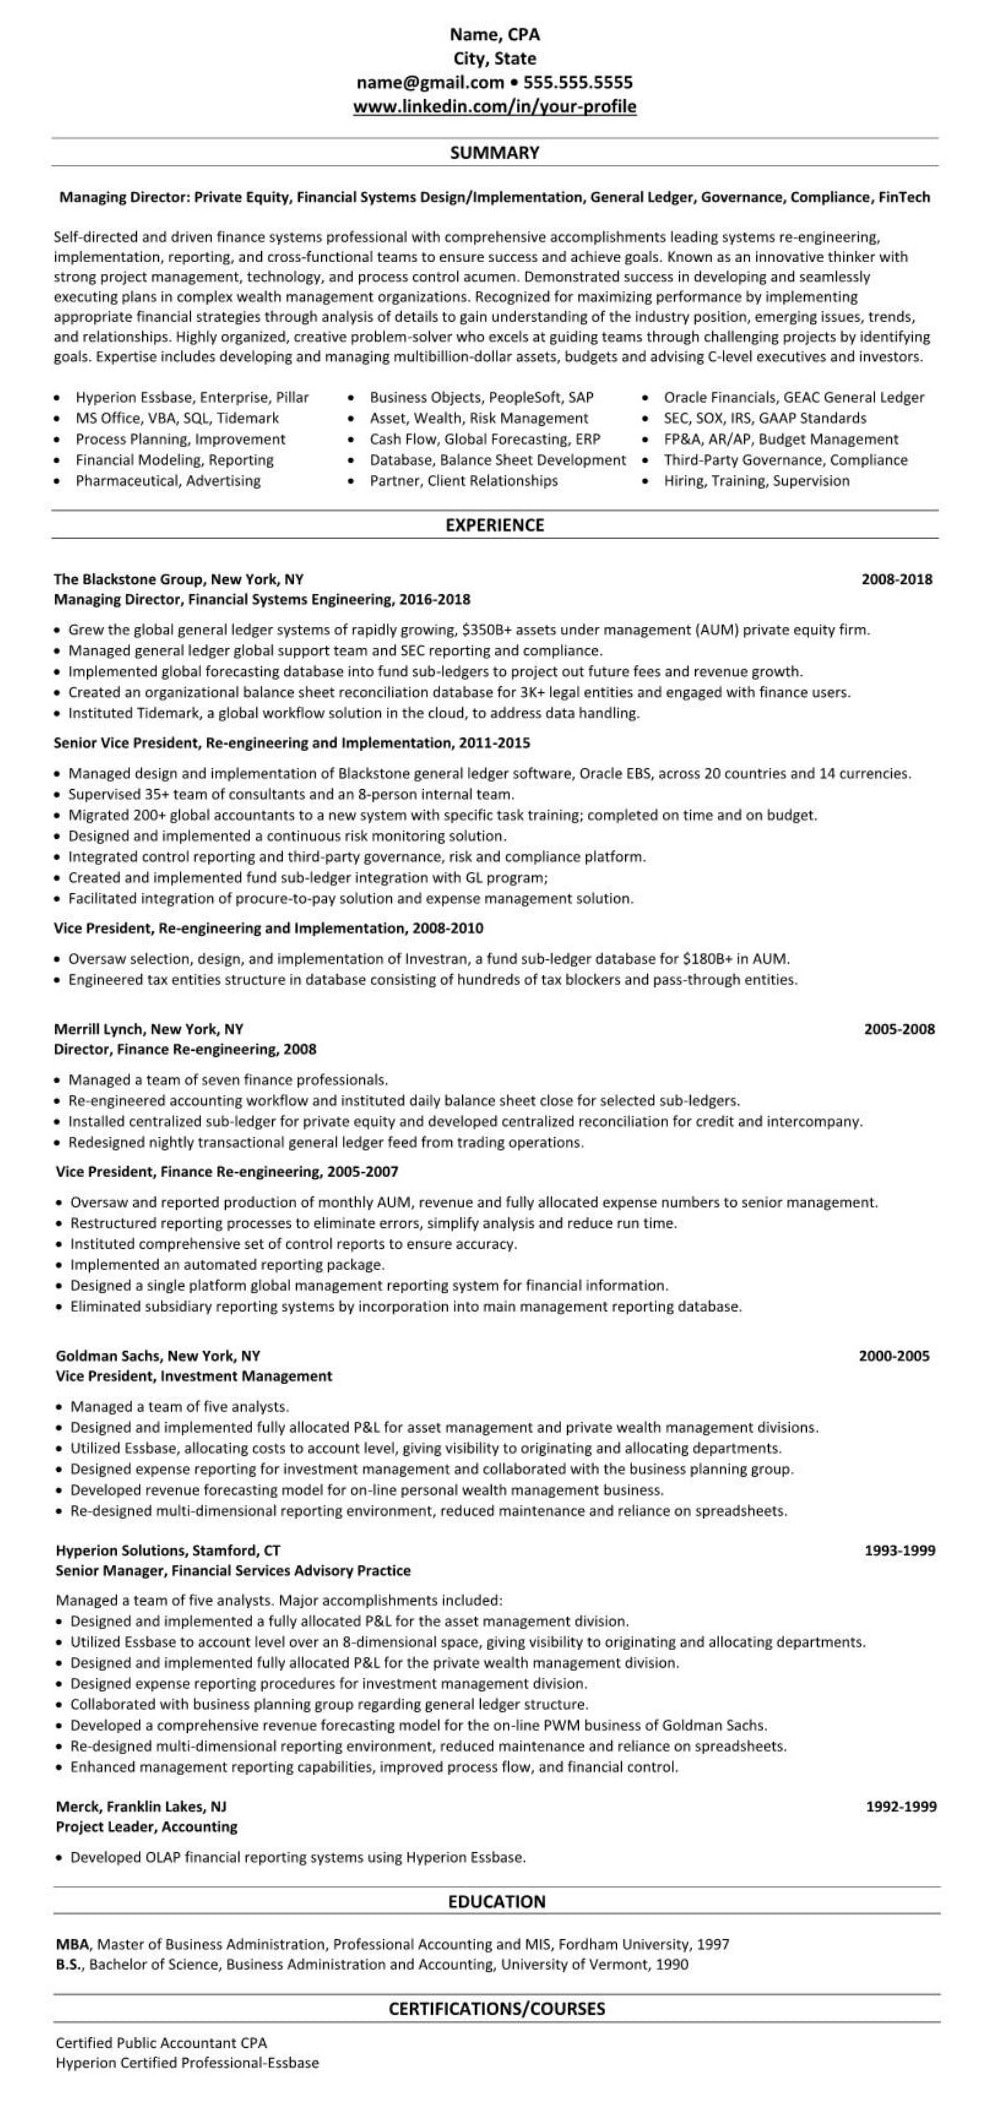 Venture Capittal VC Private Equity Resume Example 2255